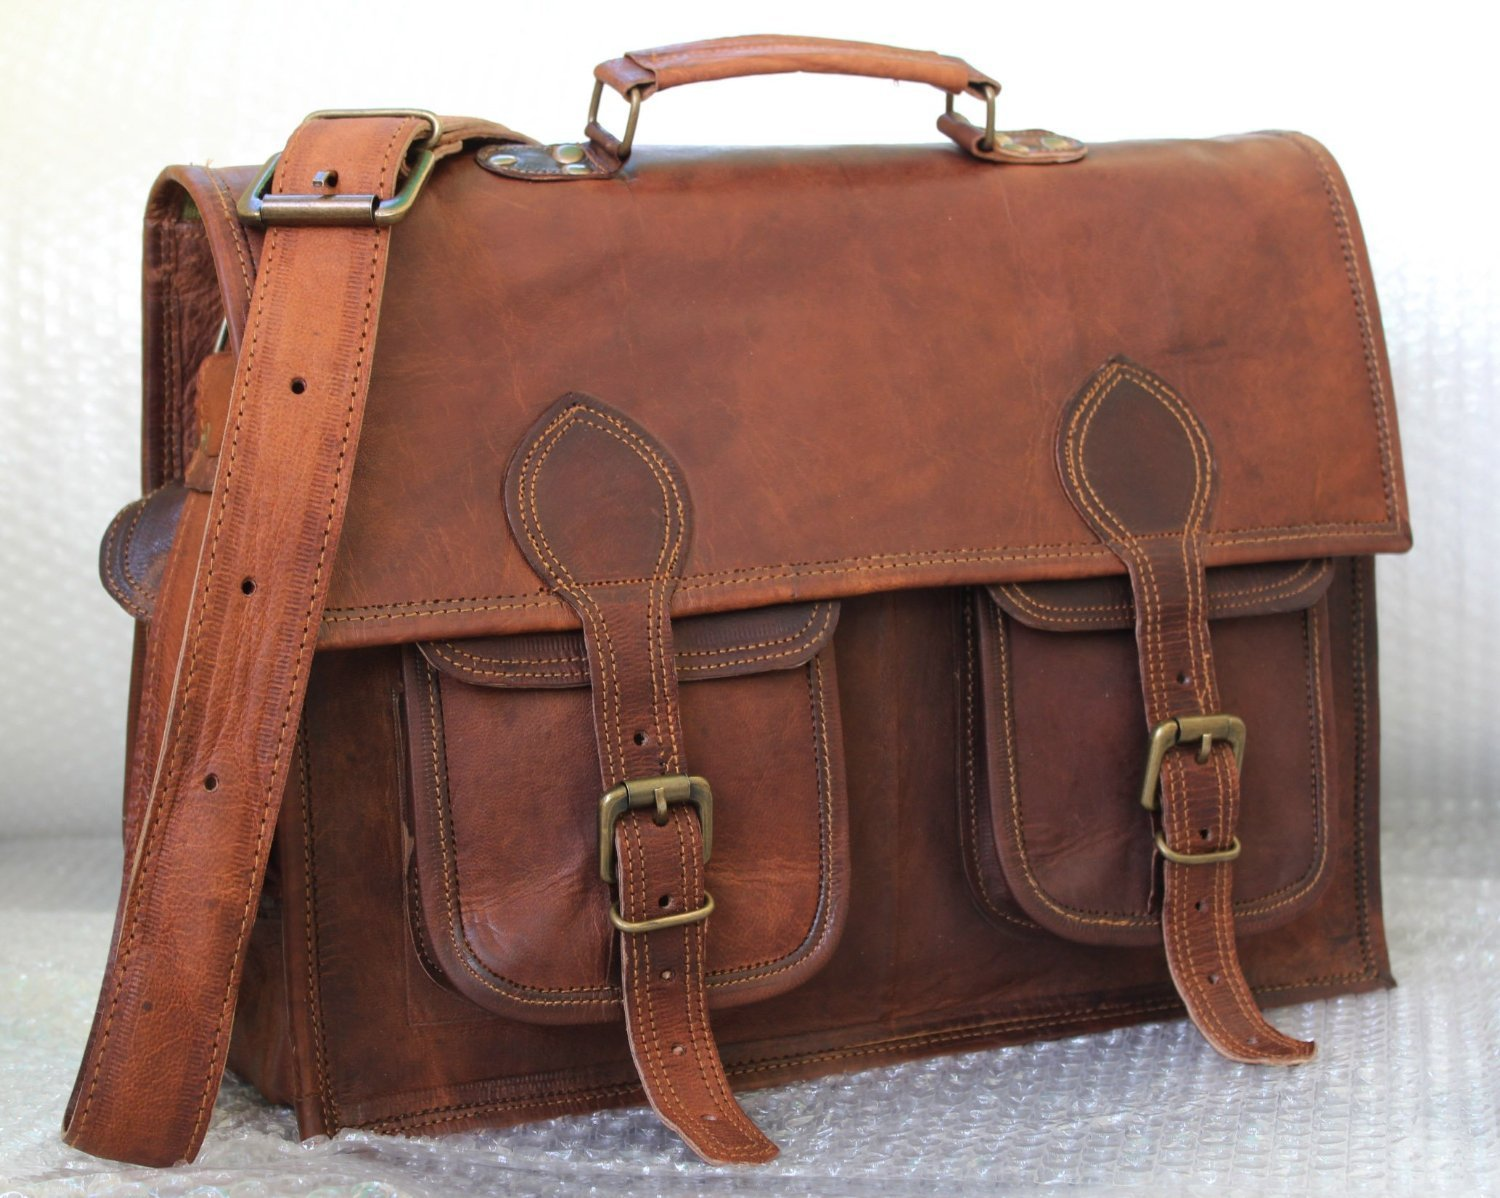 Handmadecraft Handmade Vintage Style Camera Bag/ Messenger/ Camera Briefcase/camera Messenger Bag/dslr Bag (Dark Brown)